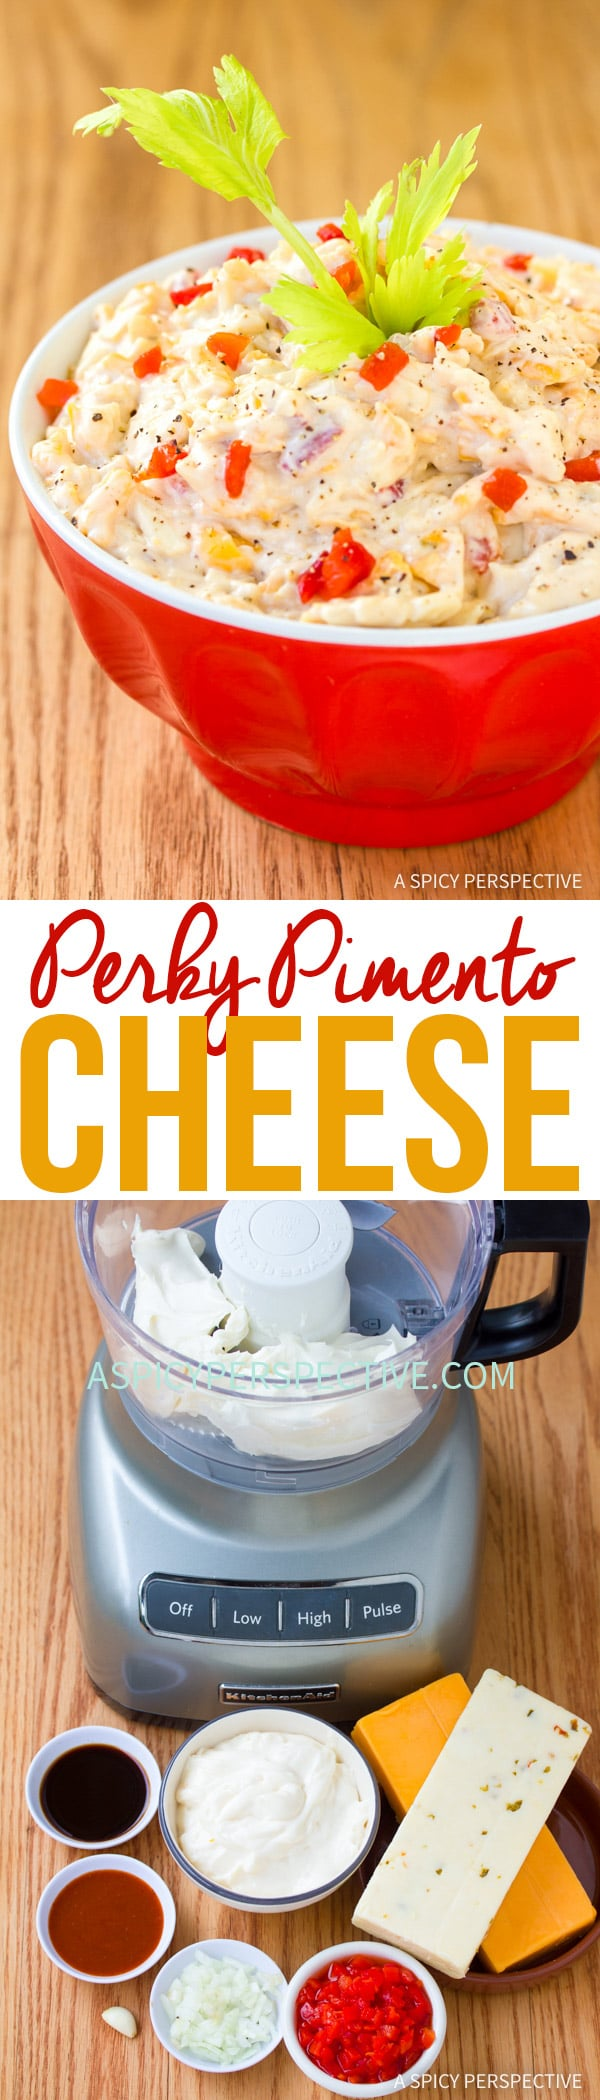 Perky Southern Pimento Cheese Recipe